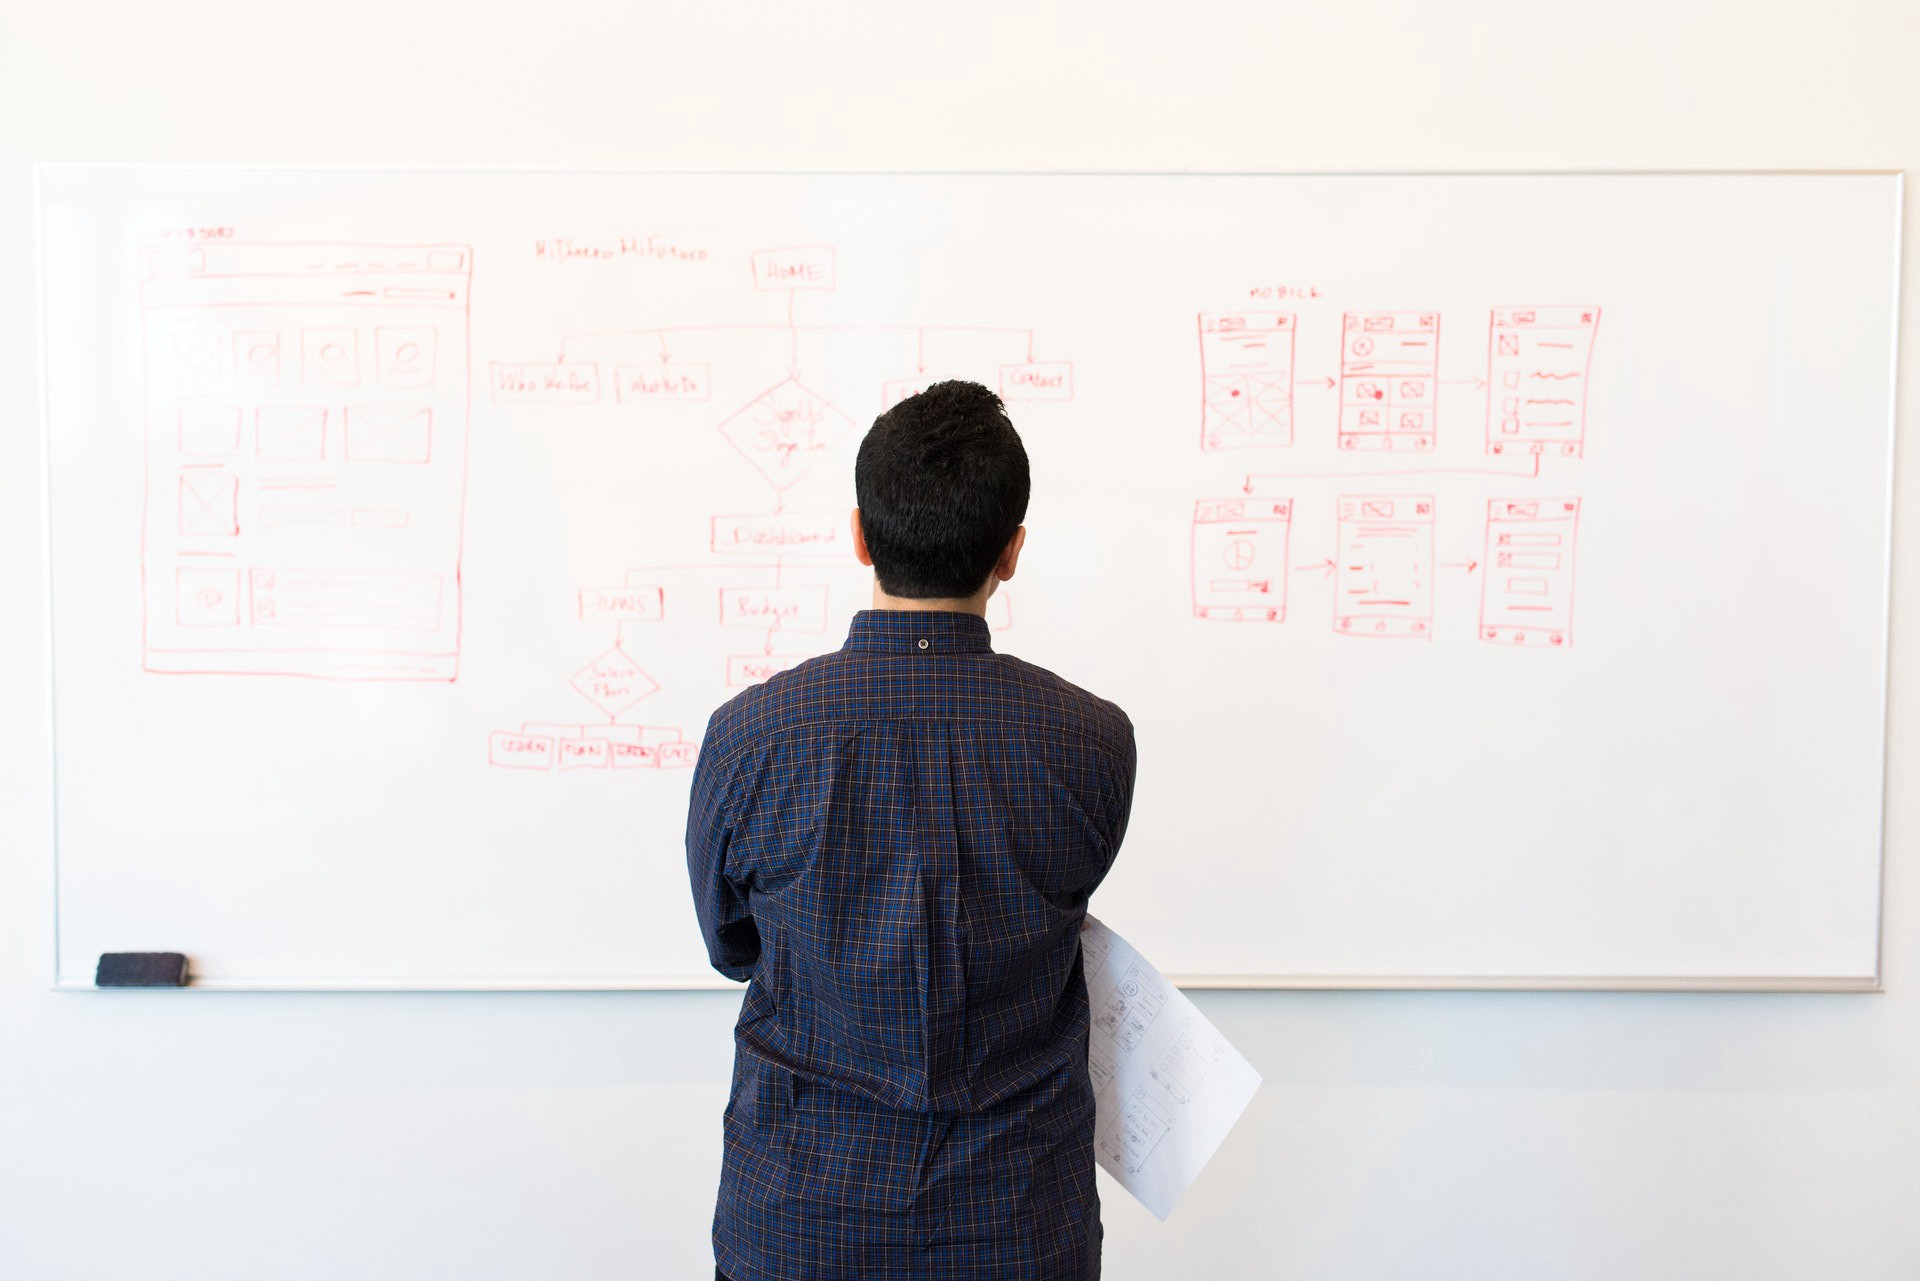 man standing in front of a whiteboard looking at flow diagrams